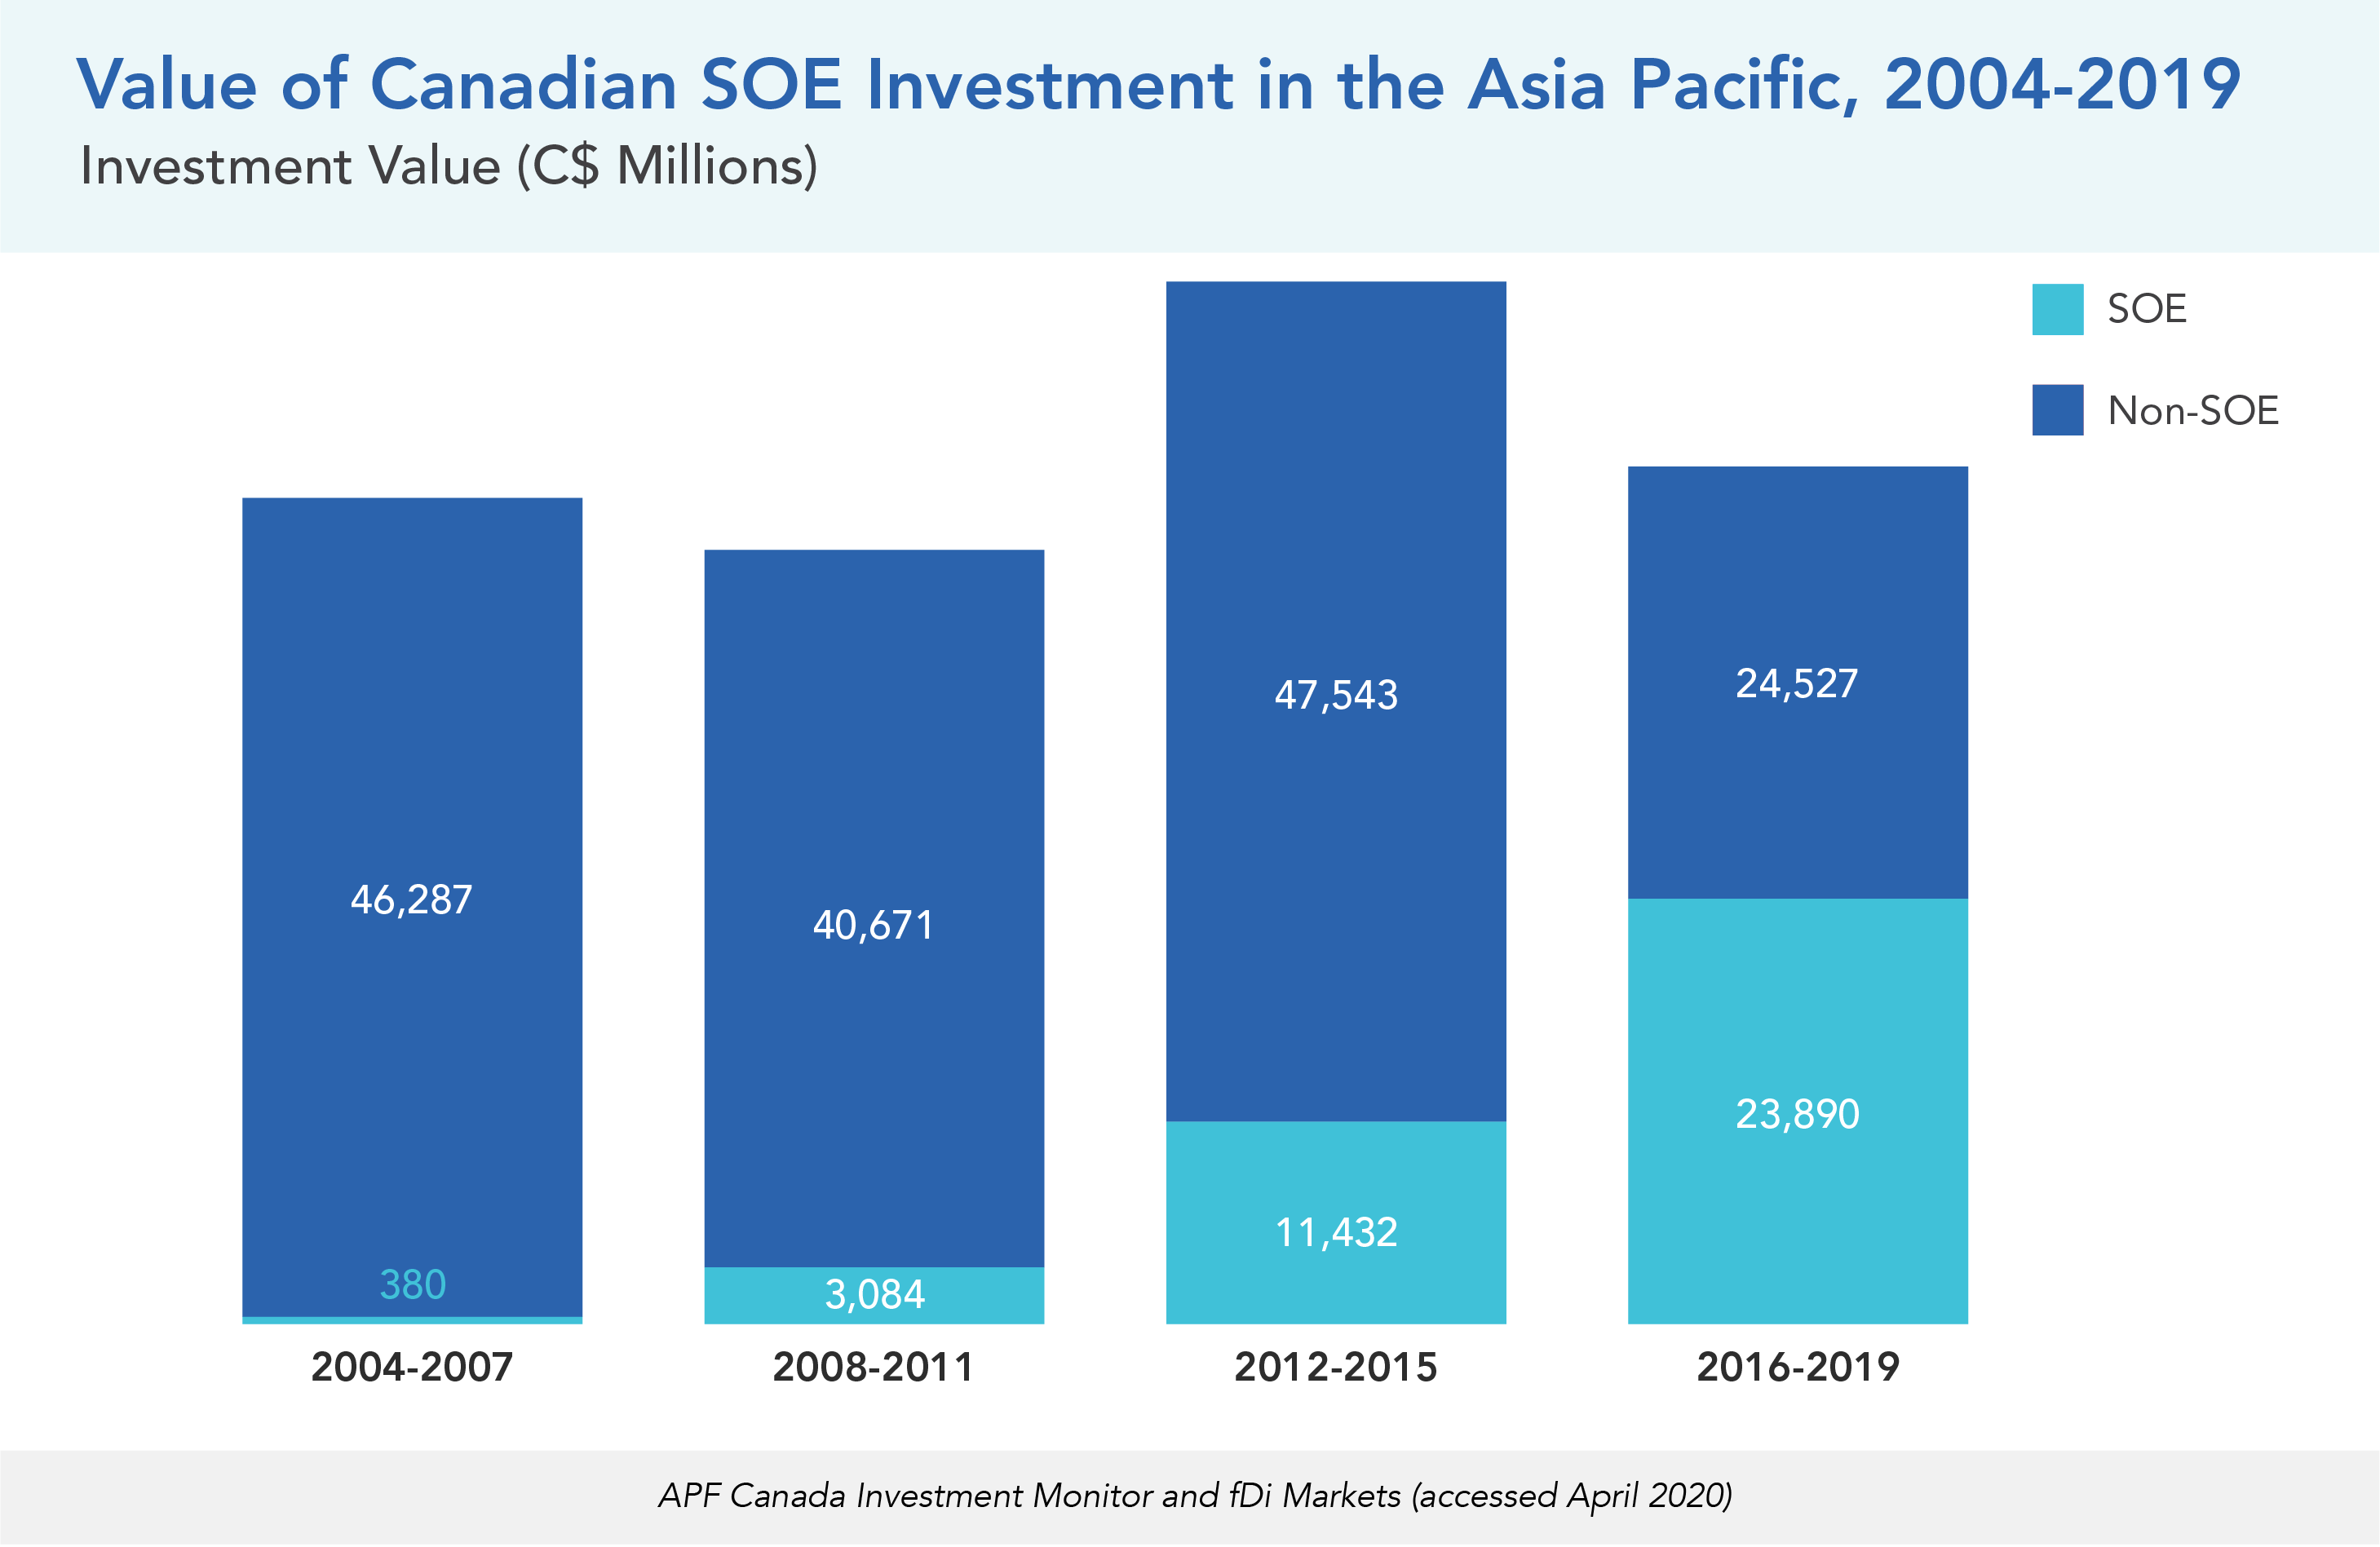 Value of Canadian SOE Investment in the Asia Pacific, 2004-2019